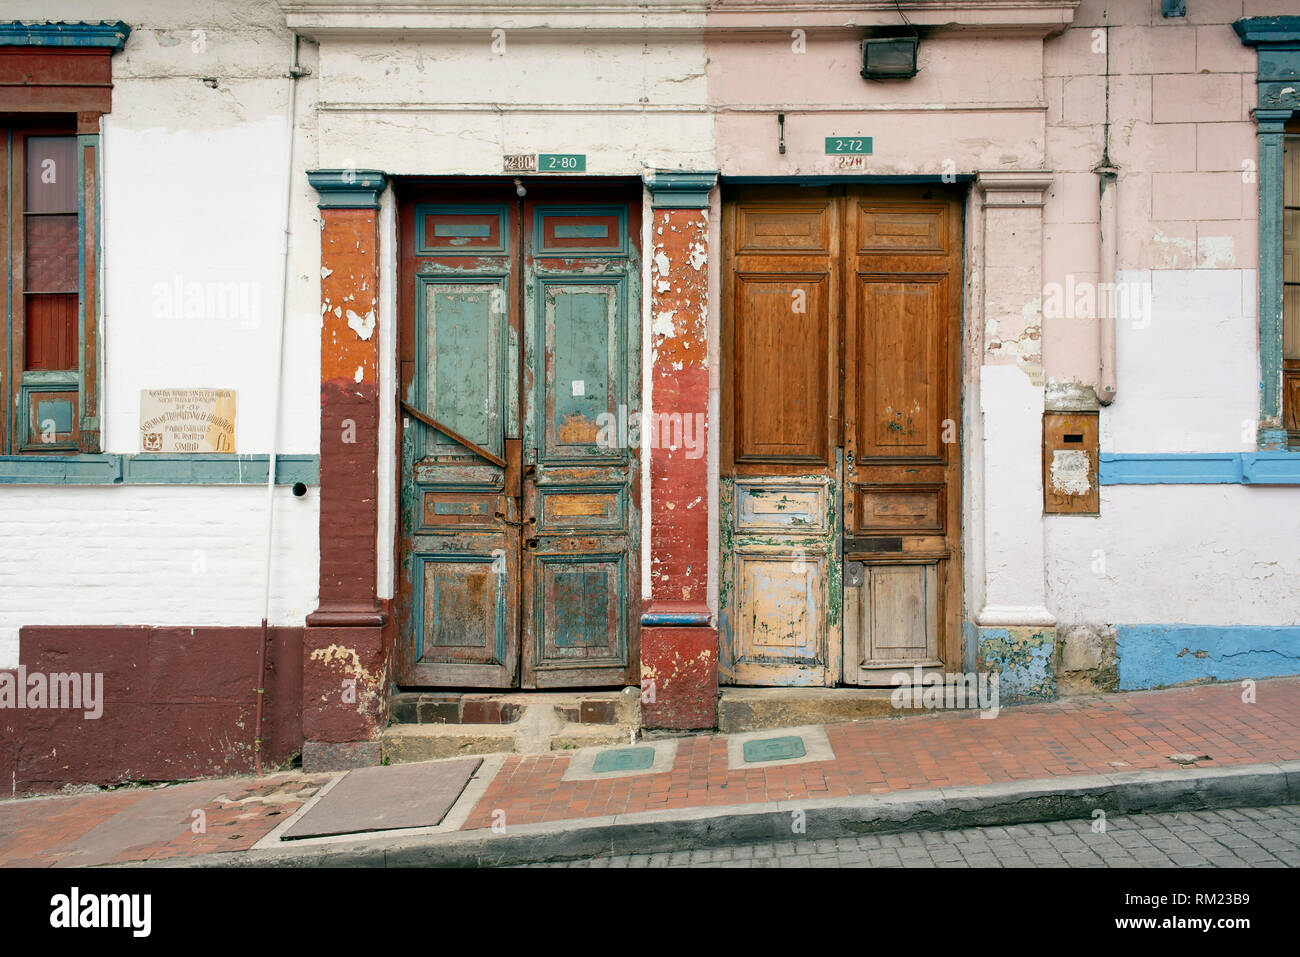 Colonial architecture with worn out doors in La Candelaria, downtown Bogota, Colombia. Sep 2018 - Stock Image